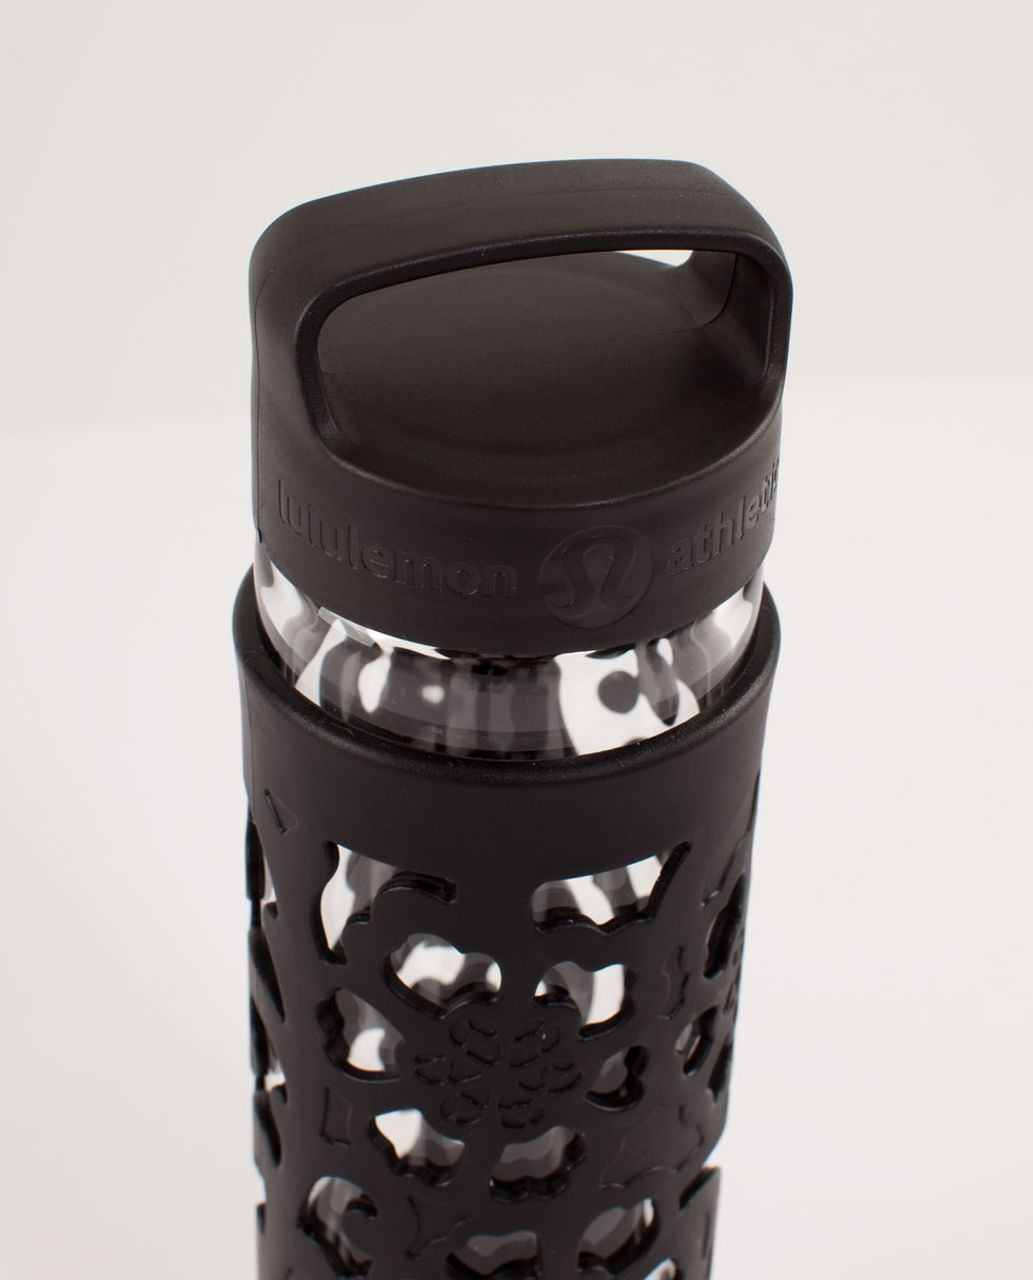 Lululemon Pure Balance Water Bottle - Black